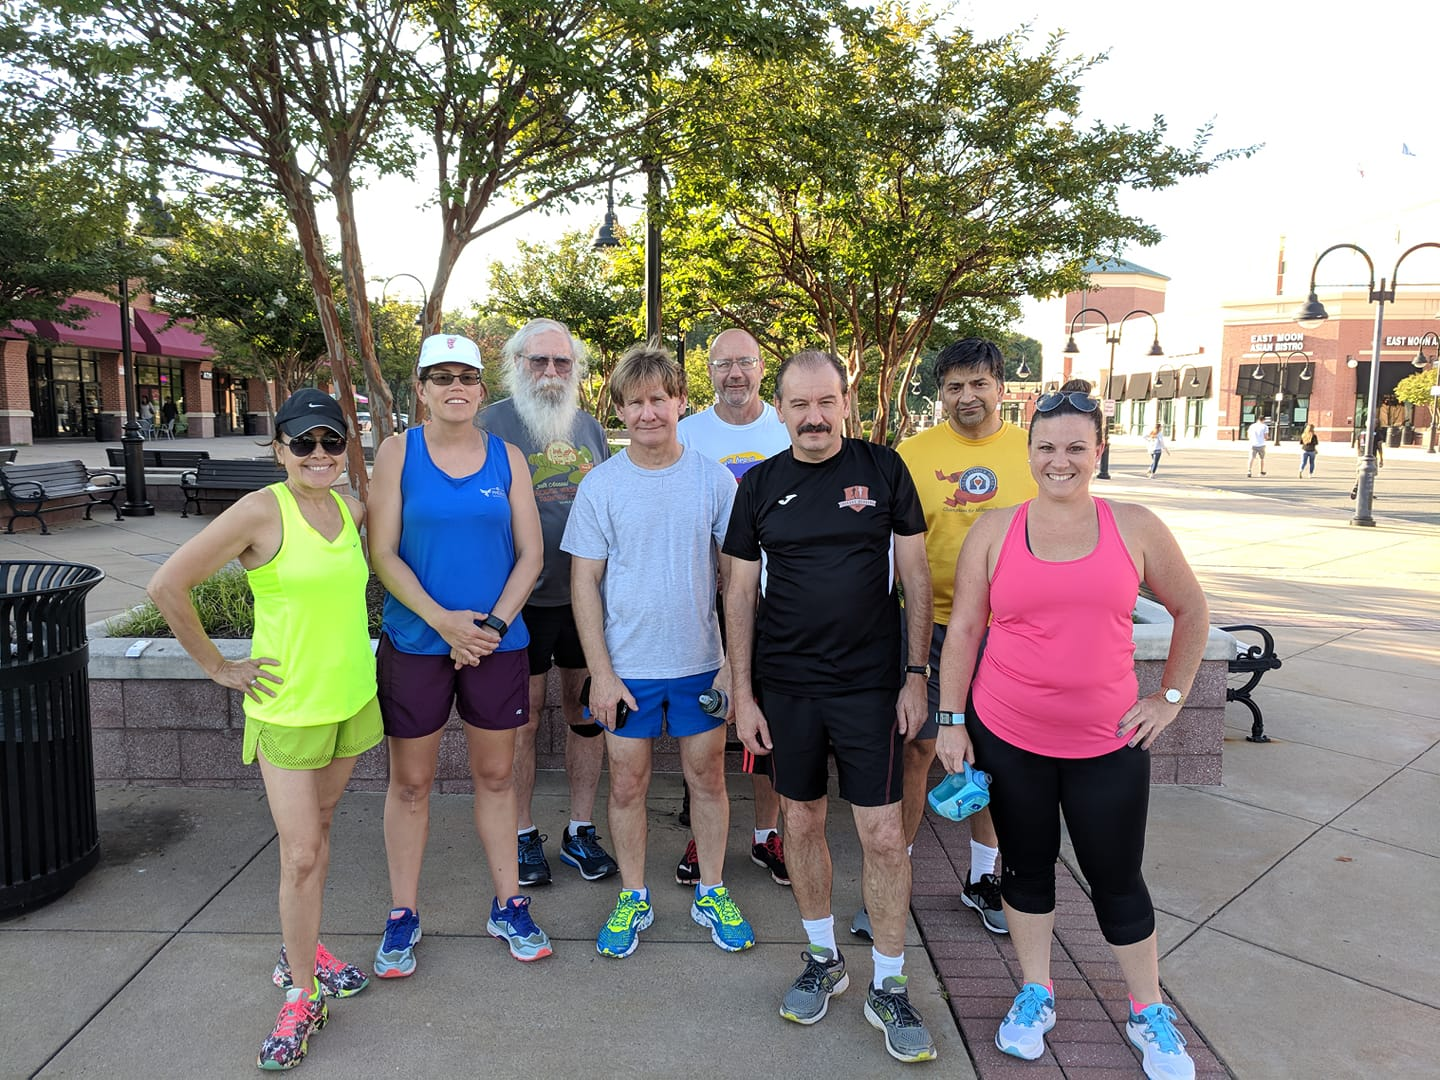 Group of runners from the Thursday run on August 23, 2018.